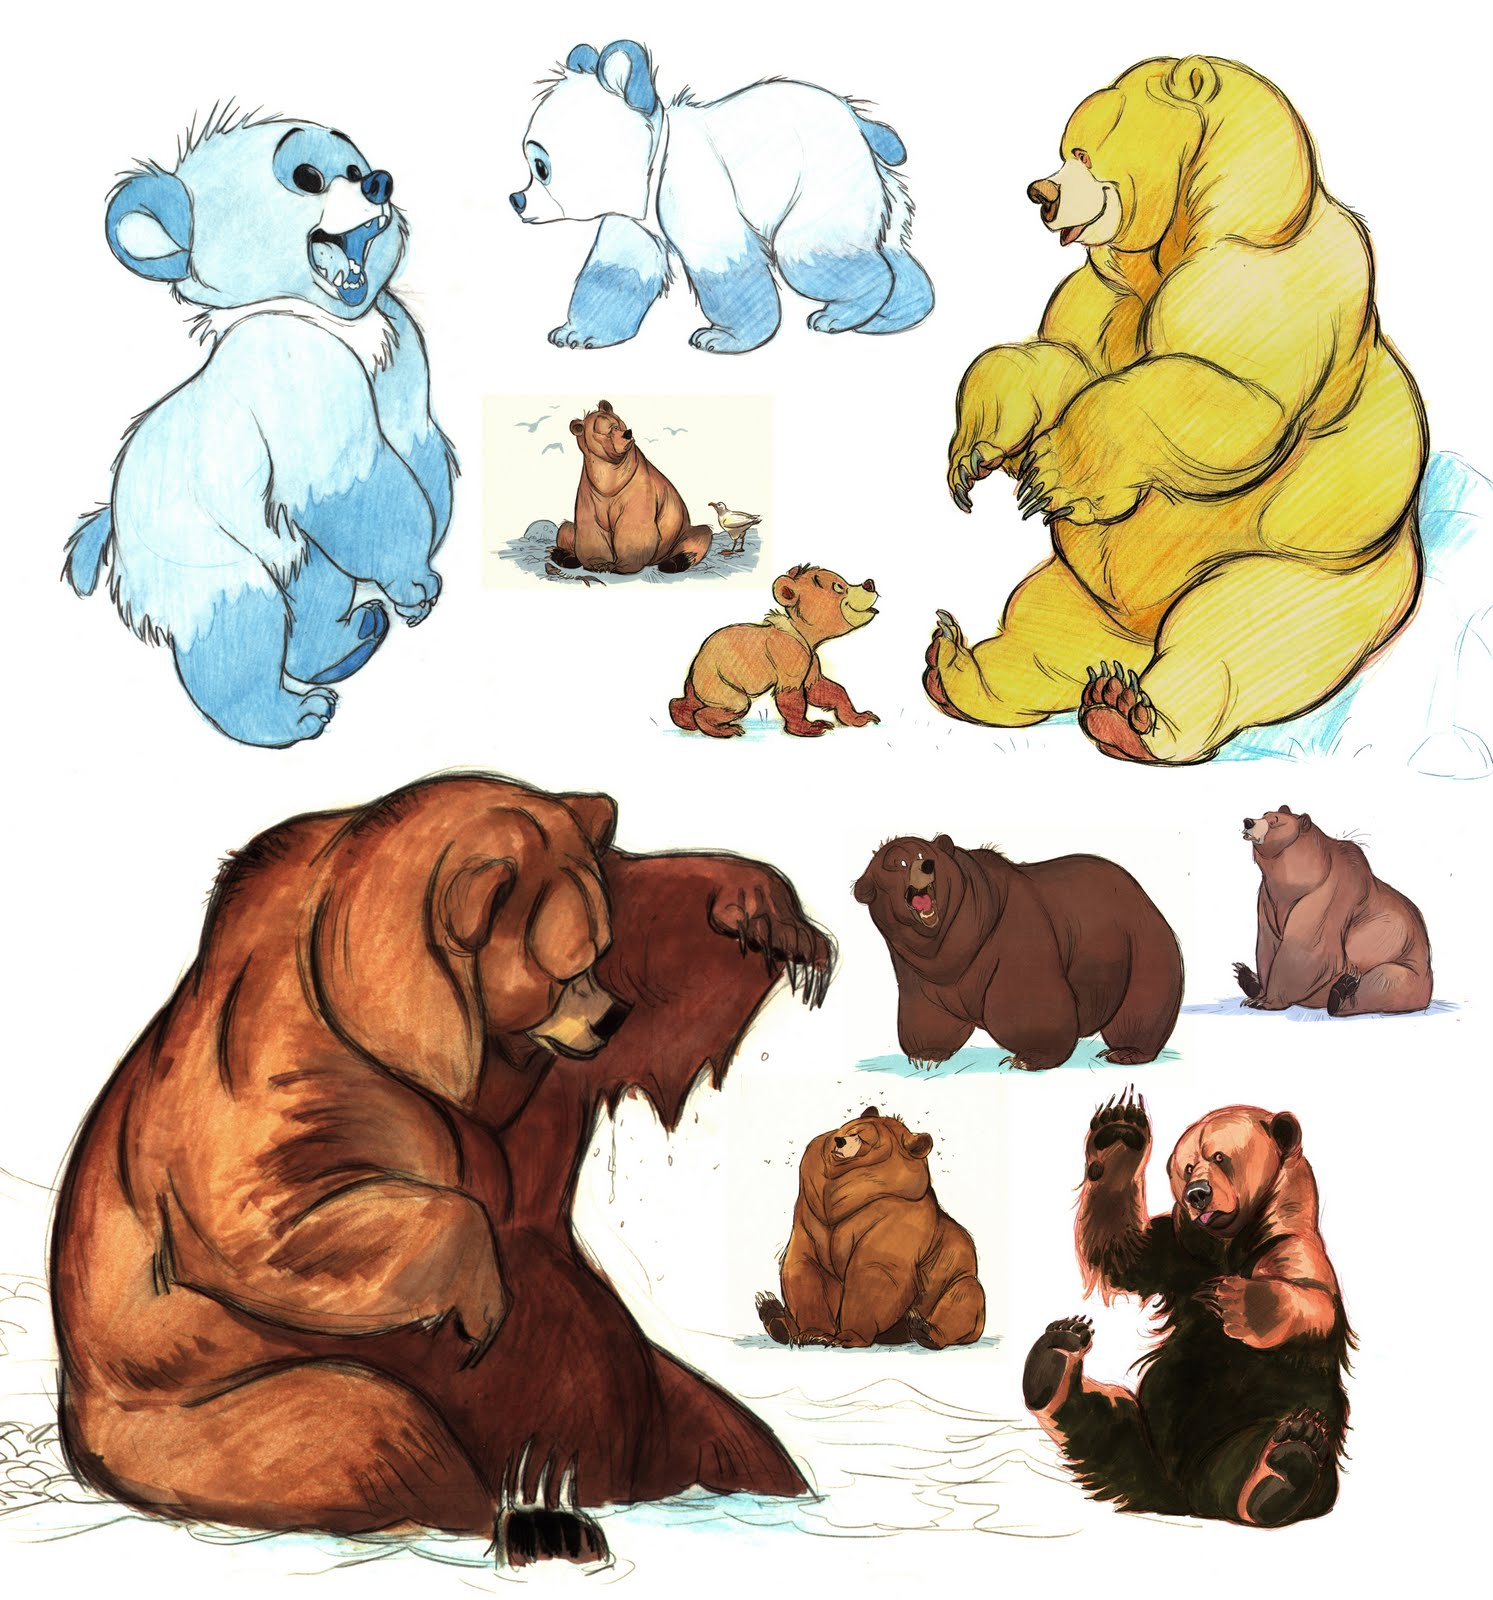 brother-bear1-comp-2.jpg